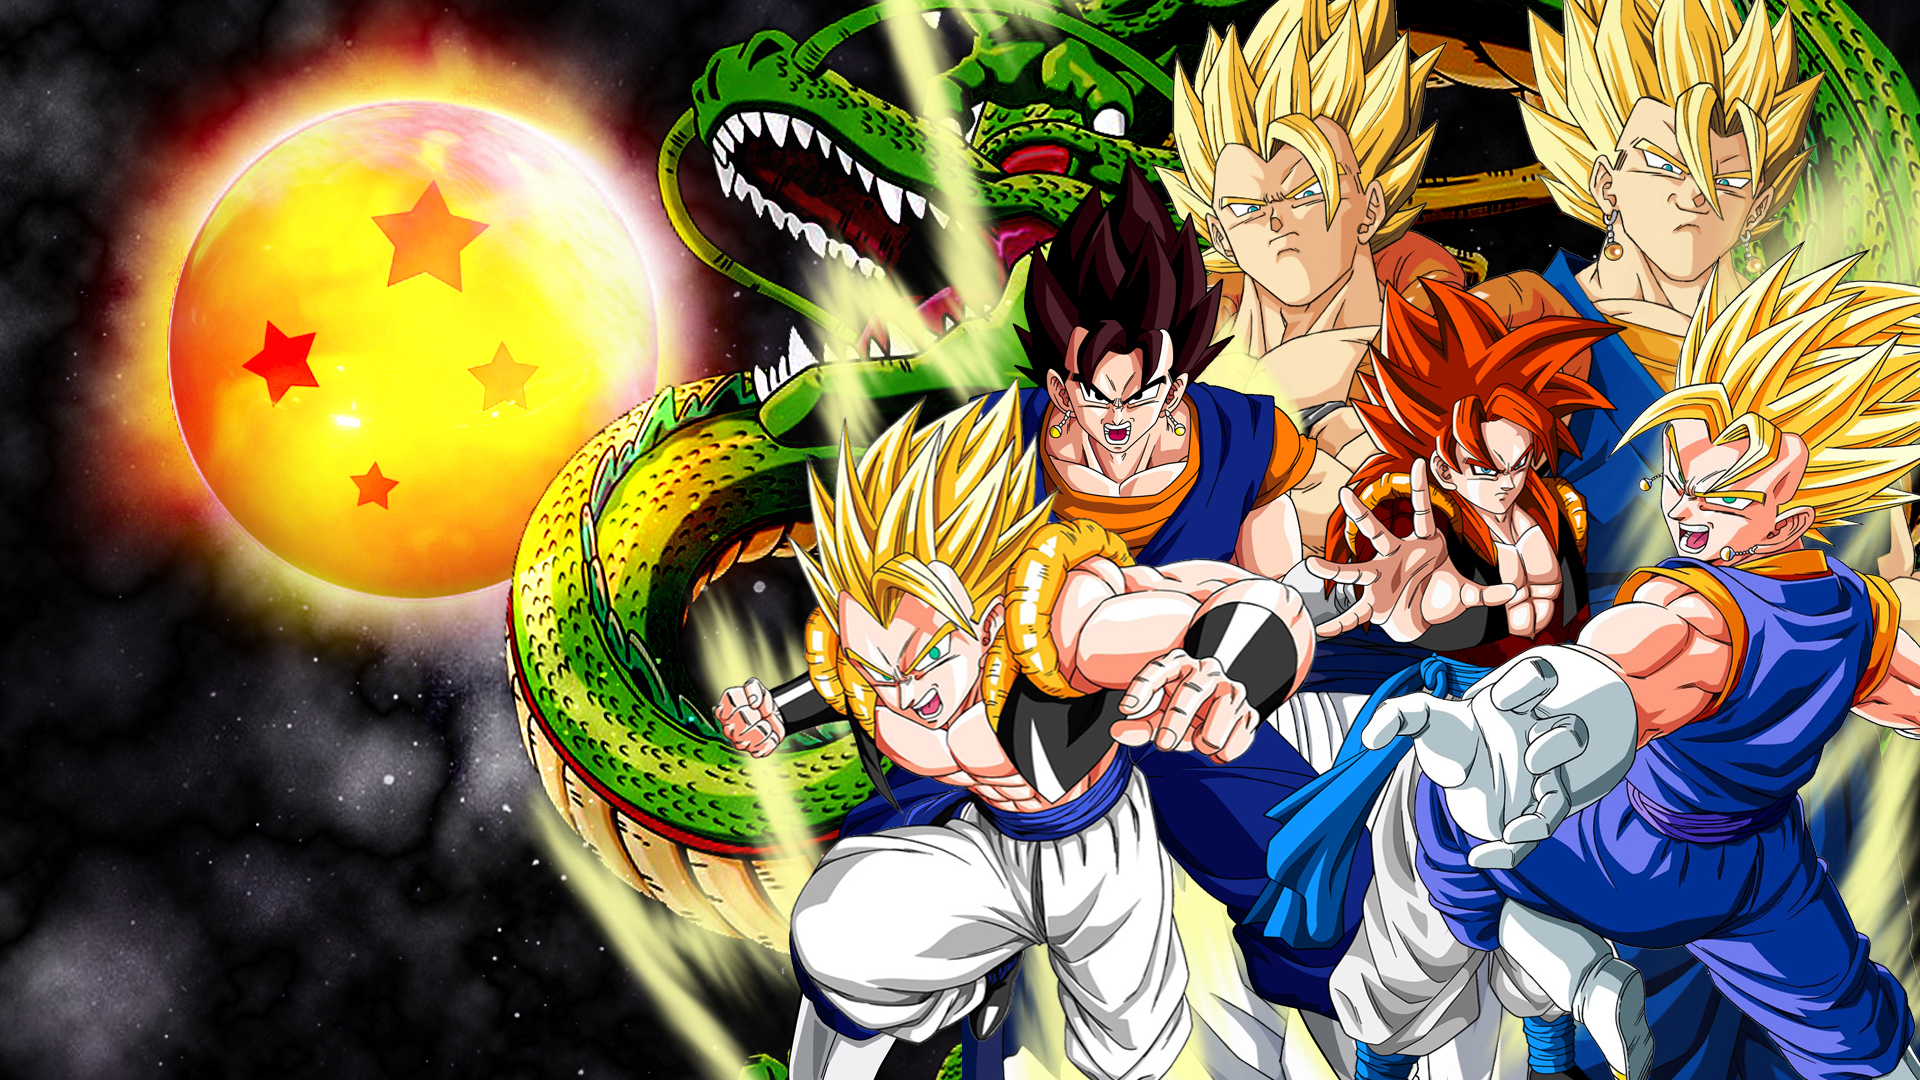 Anime Dragon Ball Z Ps4 Wallpapers Wallpaper Cave